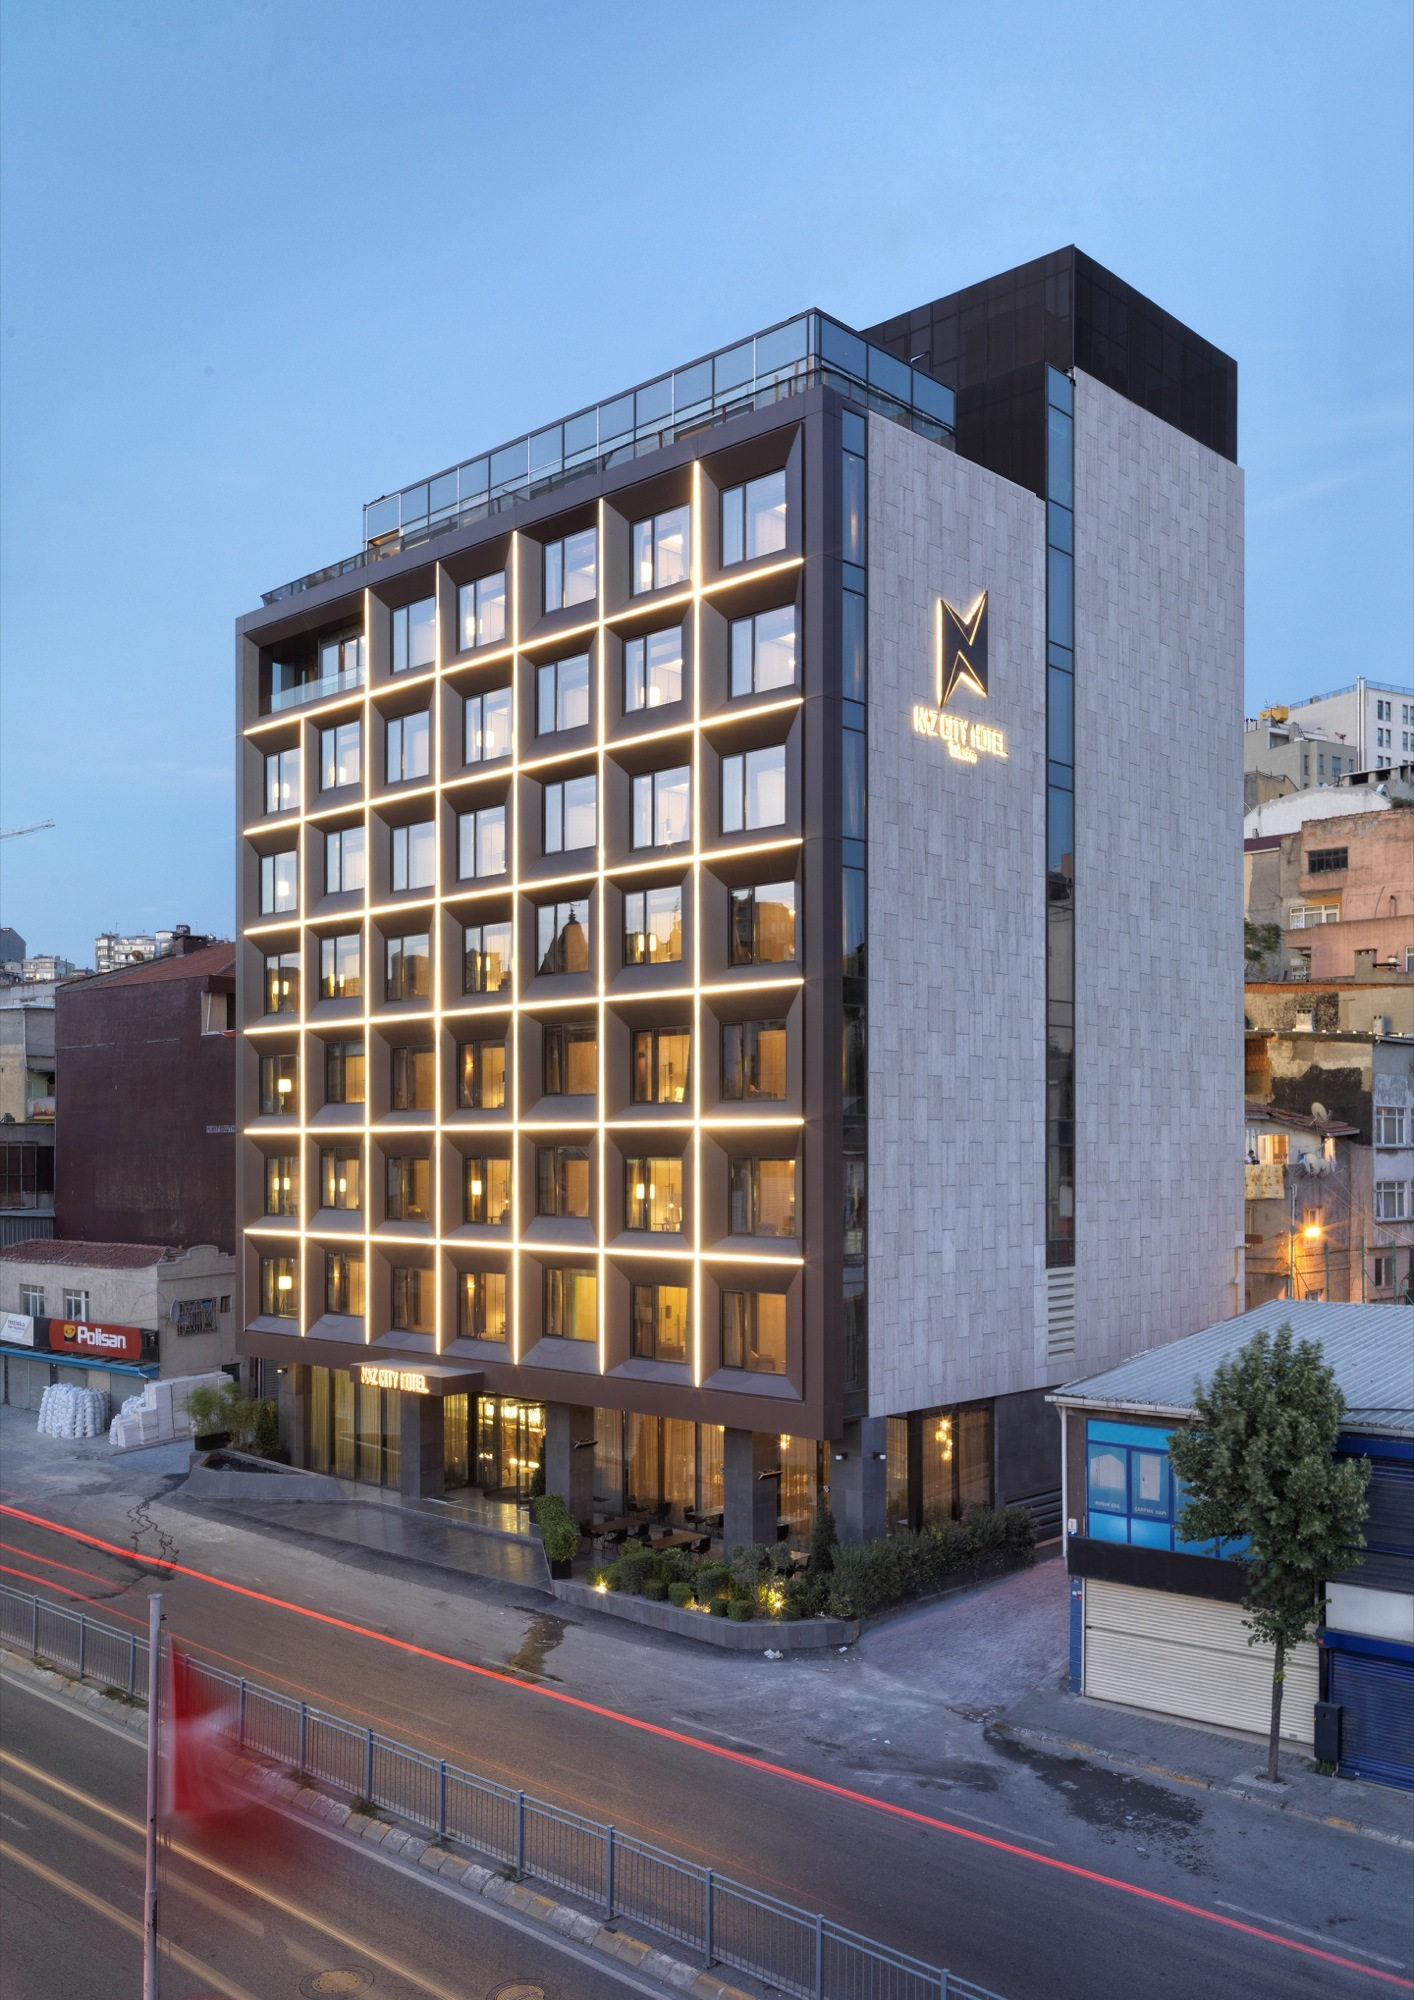 Naz city hotel taksim metex design group archdaily for Designhotel essen